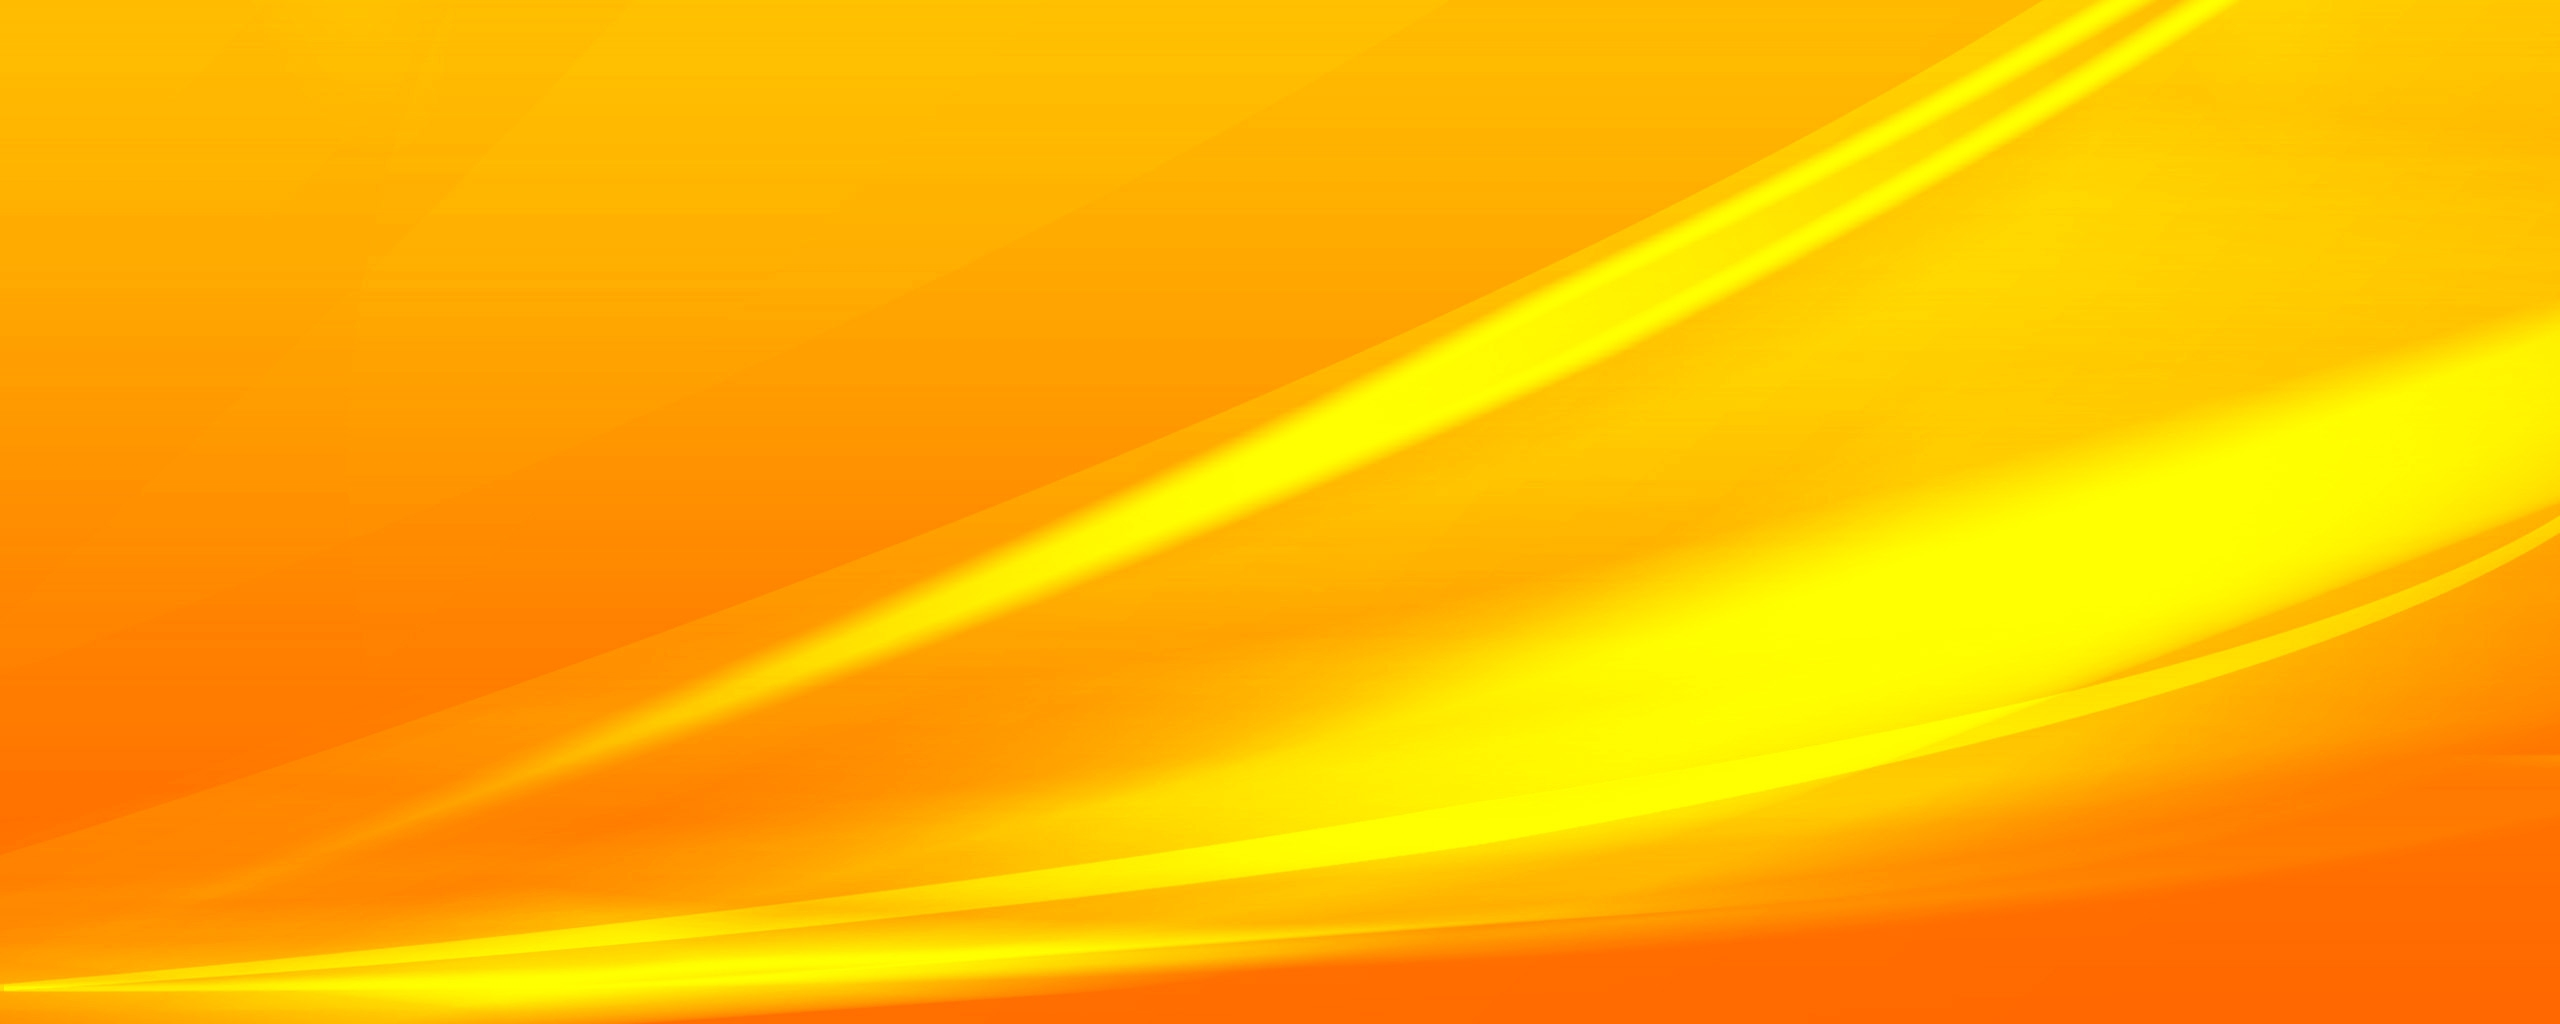 25 254973 home yellow background wallpapers hd backgrounds high